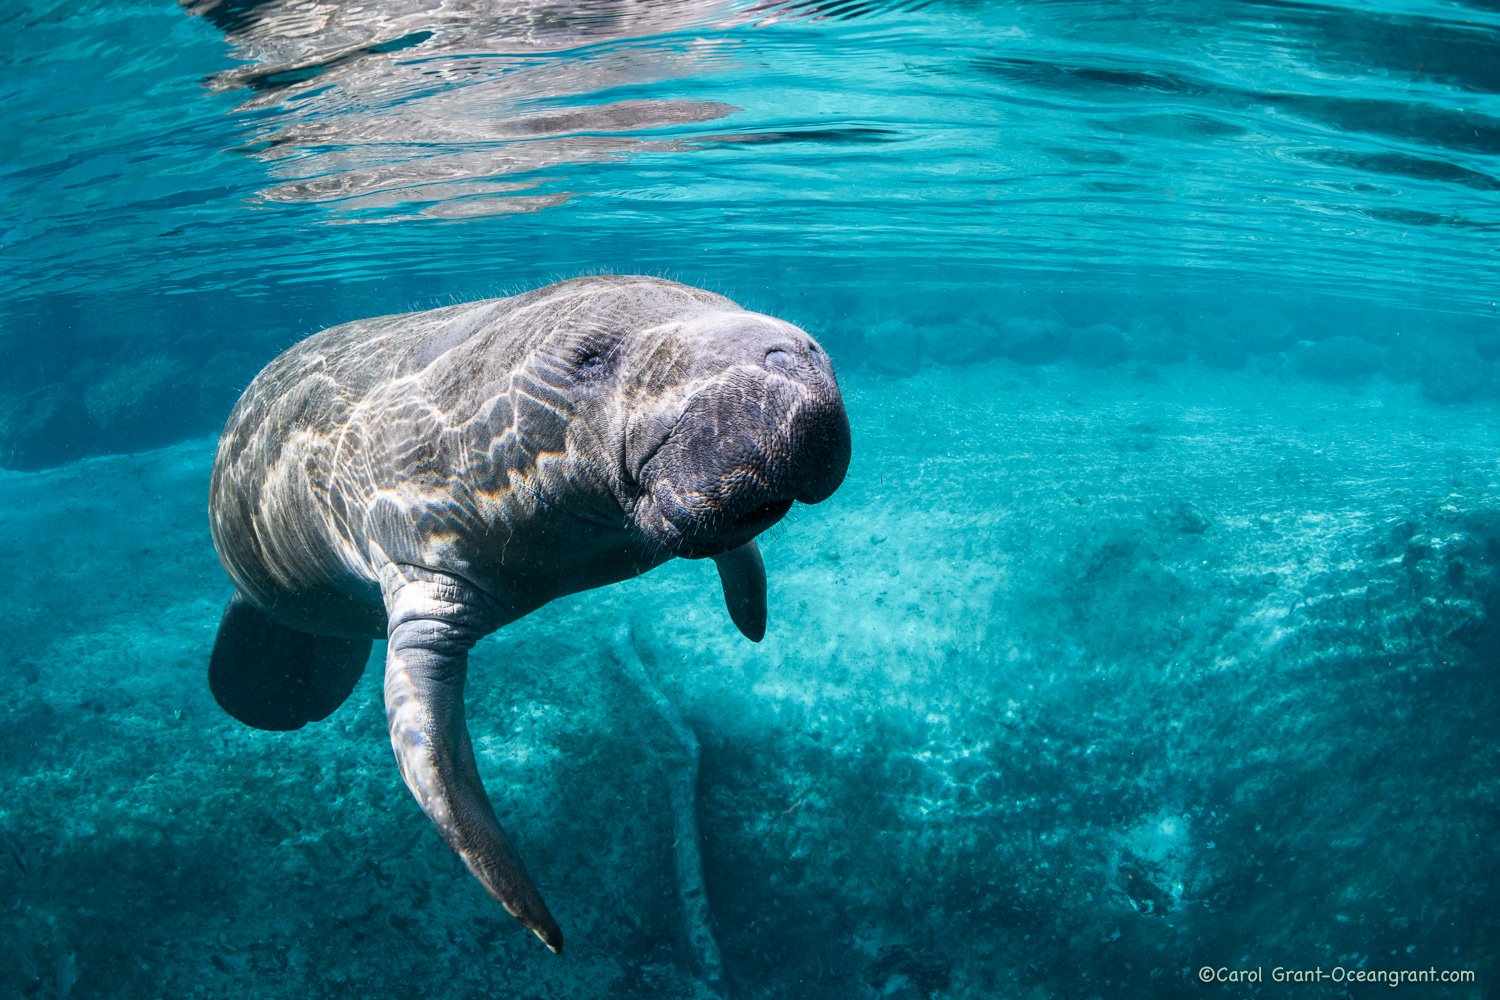 manatee on Christmas,©CGrant-oceangrant.com